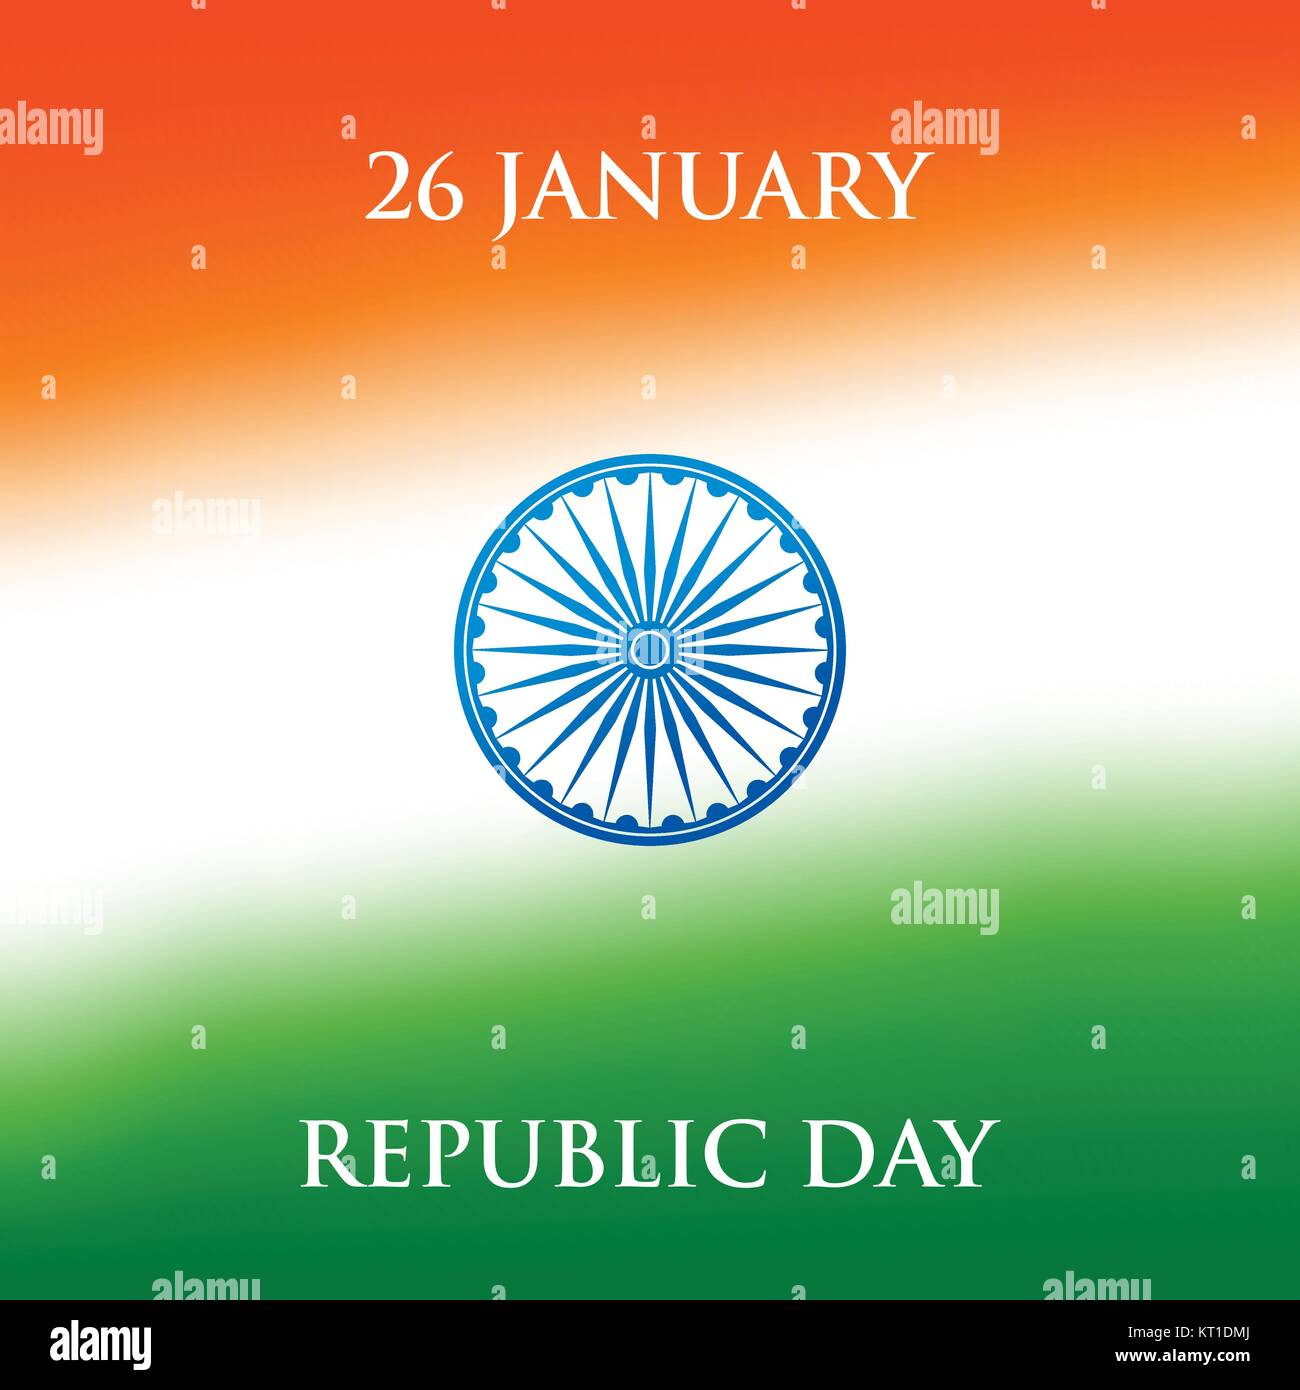 India republic day greeting card design vector illustration 26 india republic day greeting card design vector illustration 26 stock vector art illustration vector image 169677778 alamy m4hsunfo